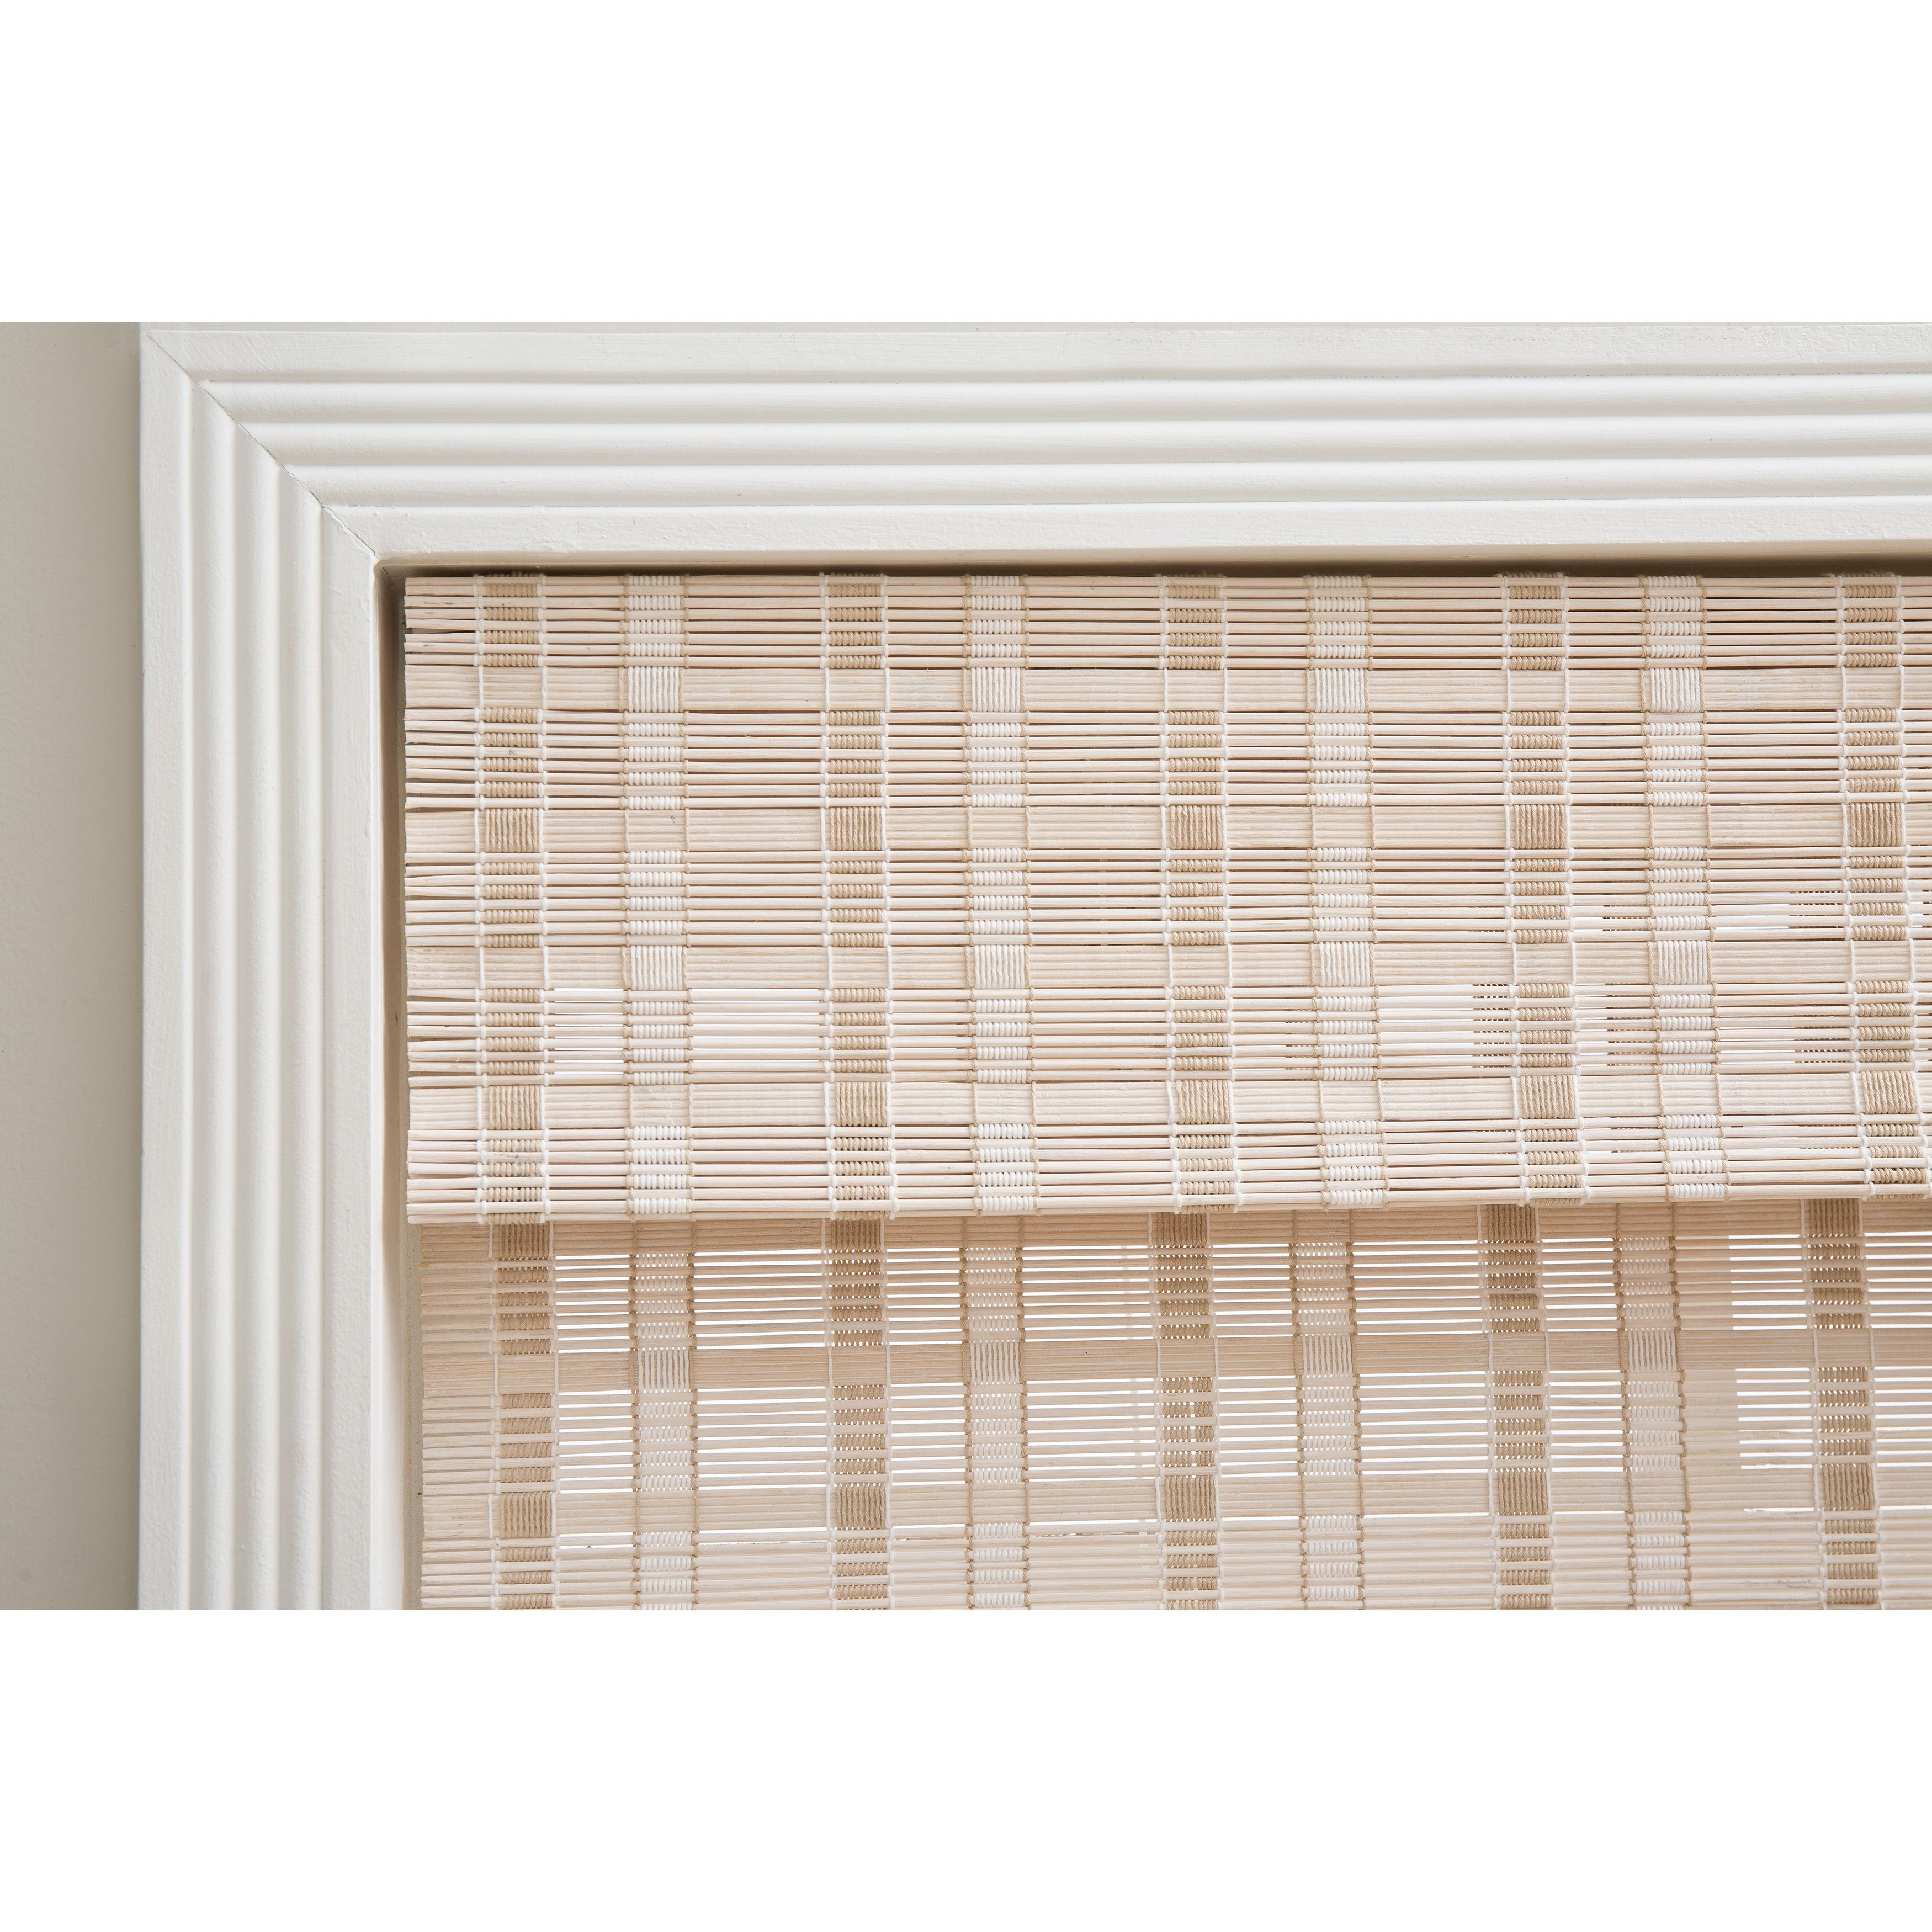 from best overstock treatments pinterest image via tweaking bamboo designs shades dressings window living on images room house abbyminteriors blinds